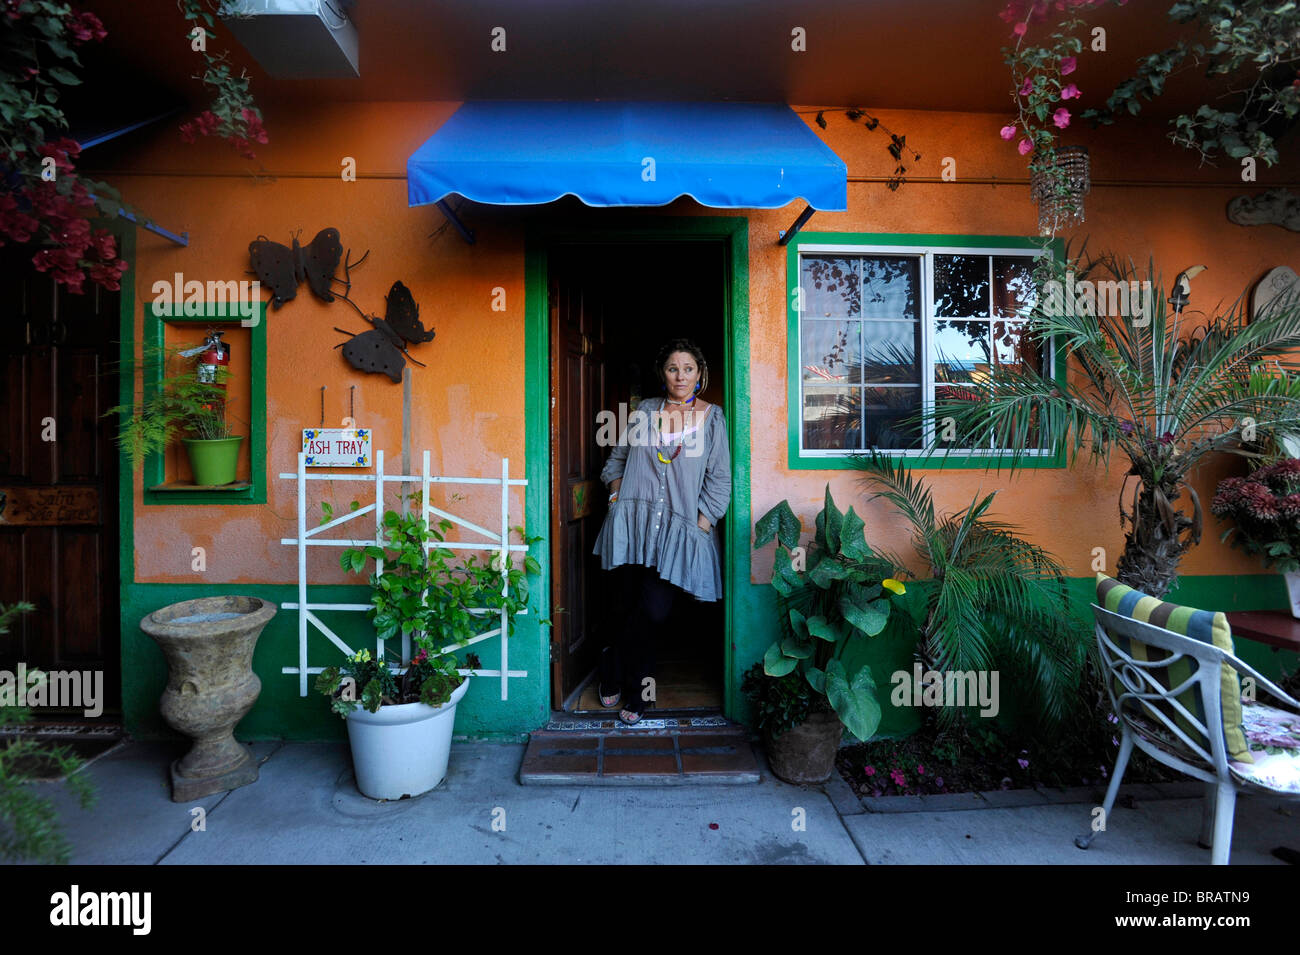 Cafe Brasil In Culver City Los Angeles Is A Stylish Pet Friendly